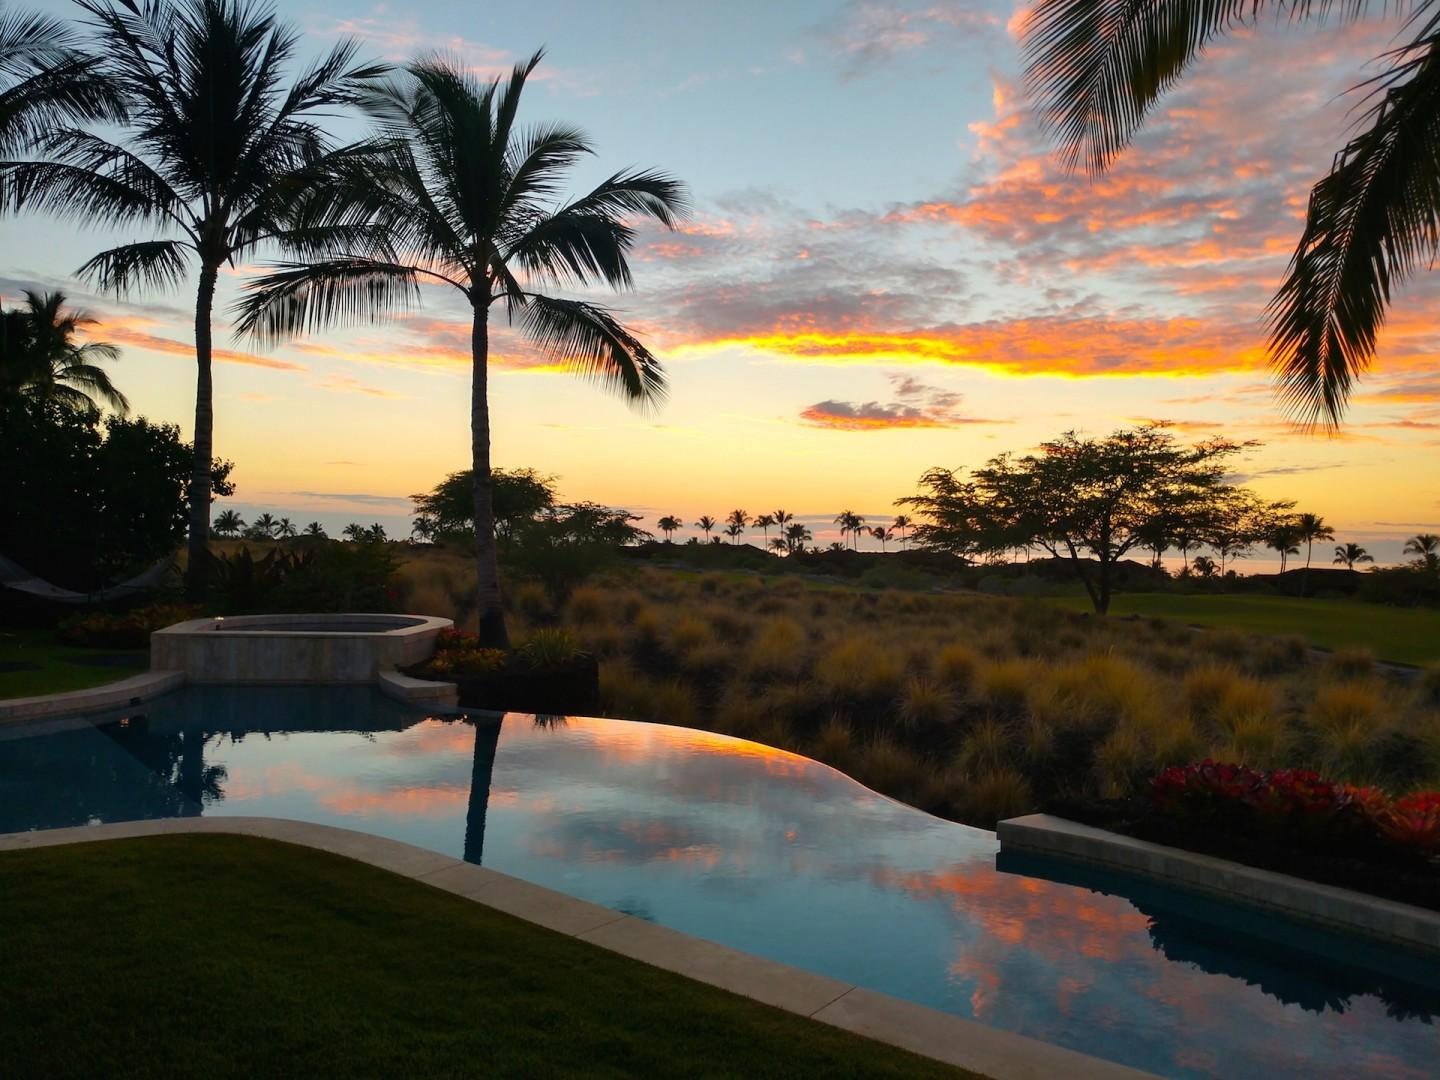 Gorgeous sunset views from your private yard.